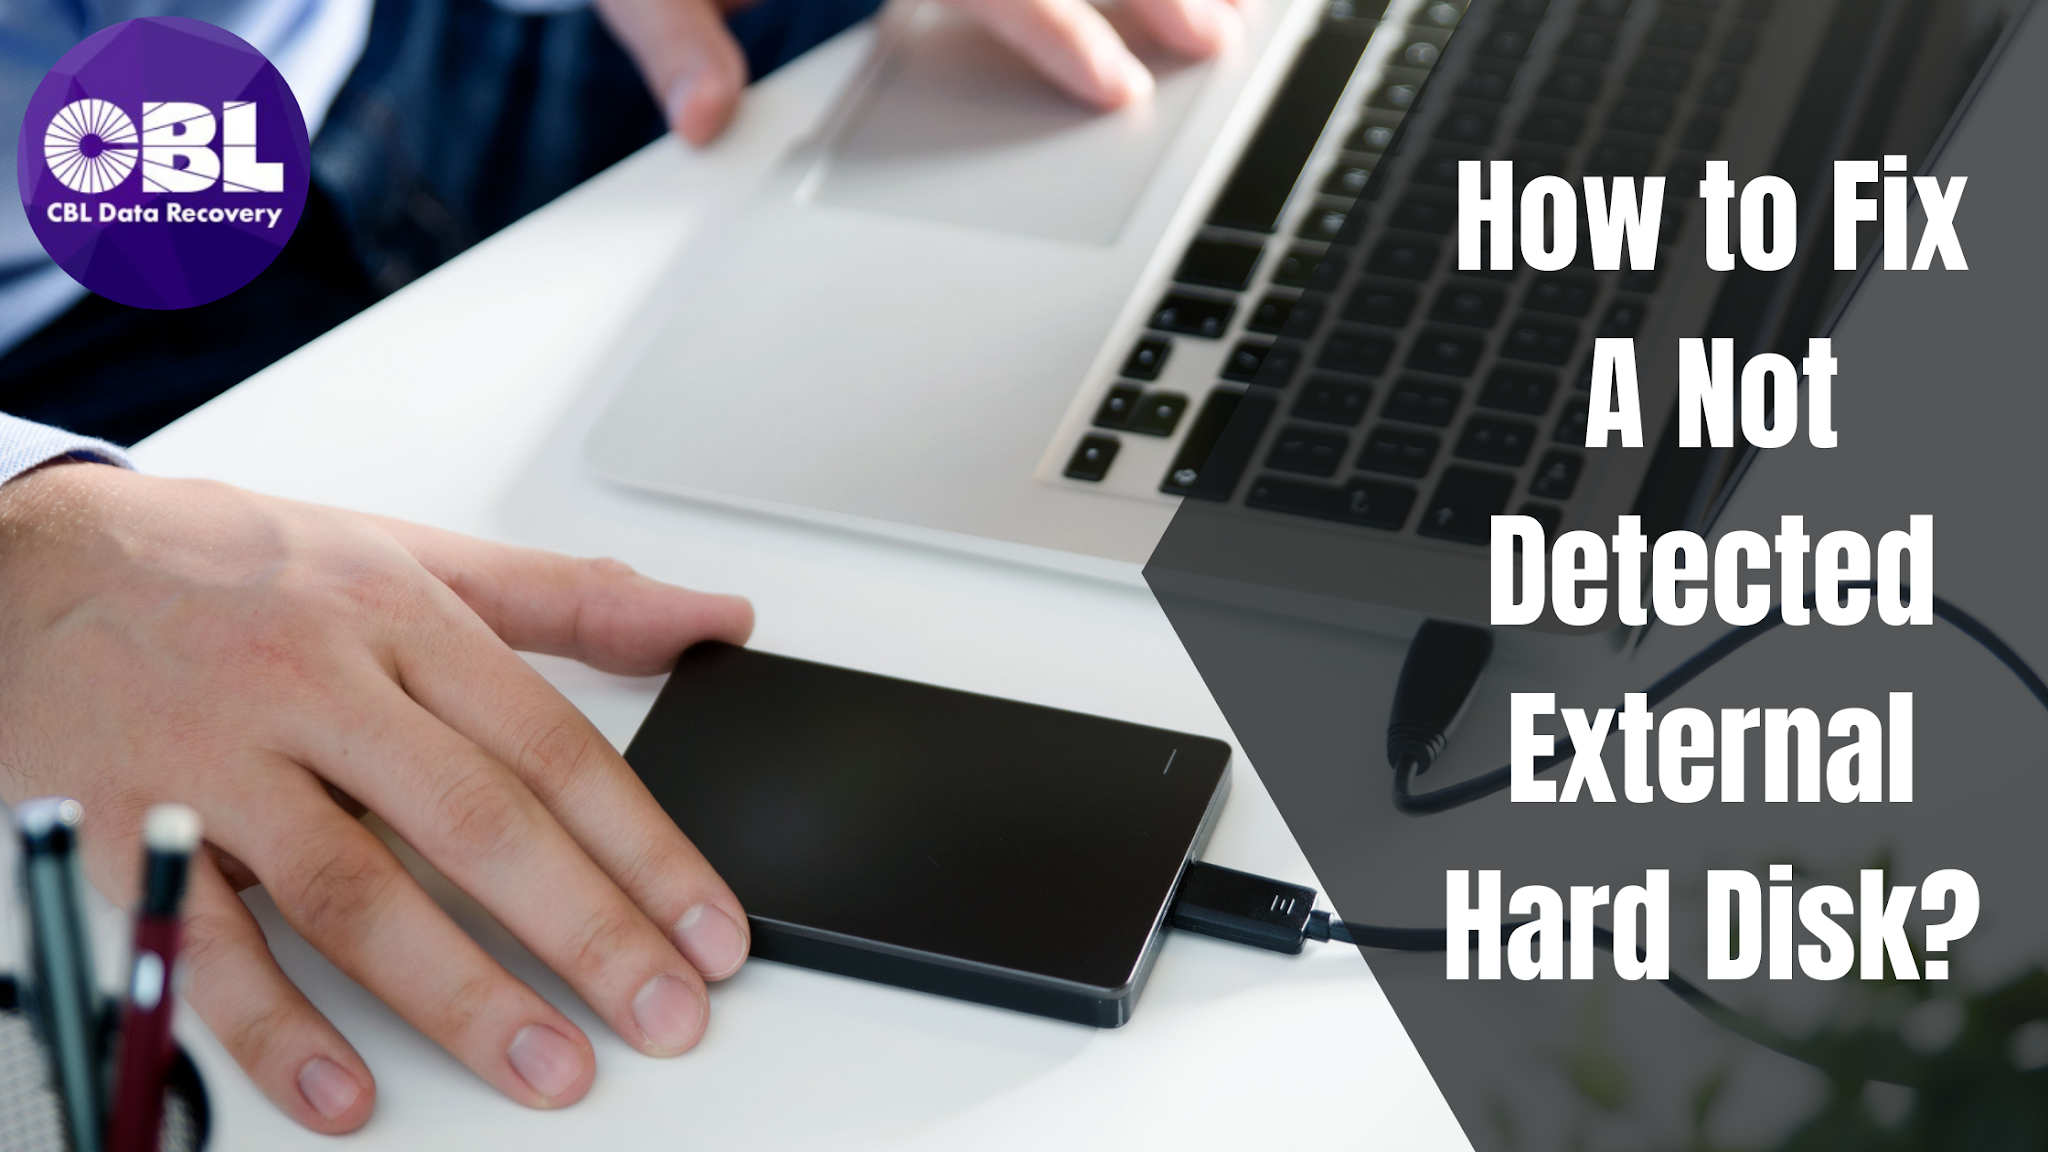 How to Fix A Not Detected External Hard Disk?